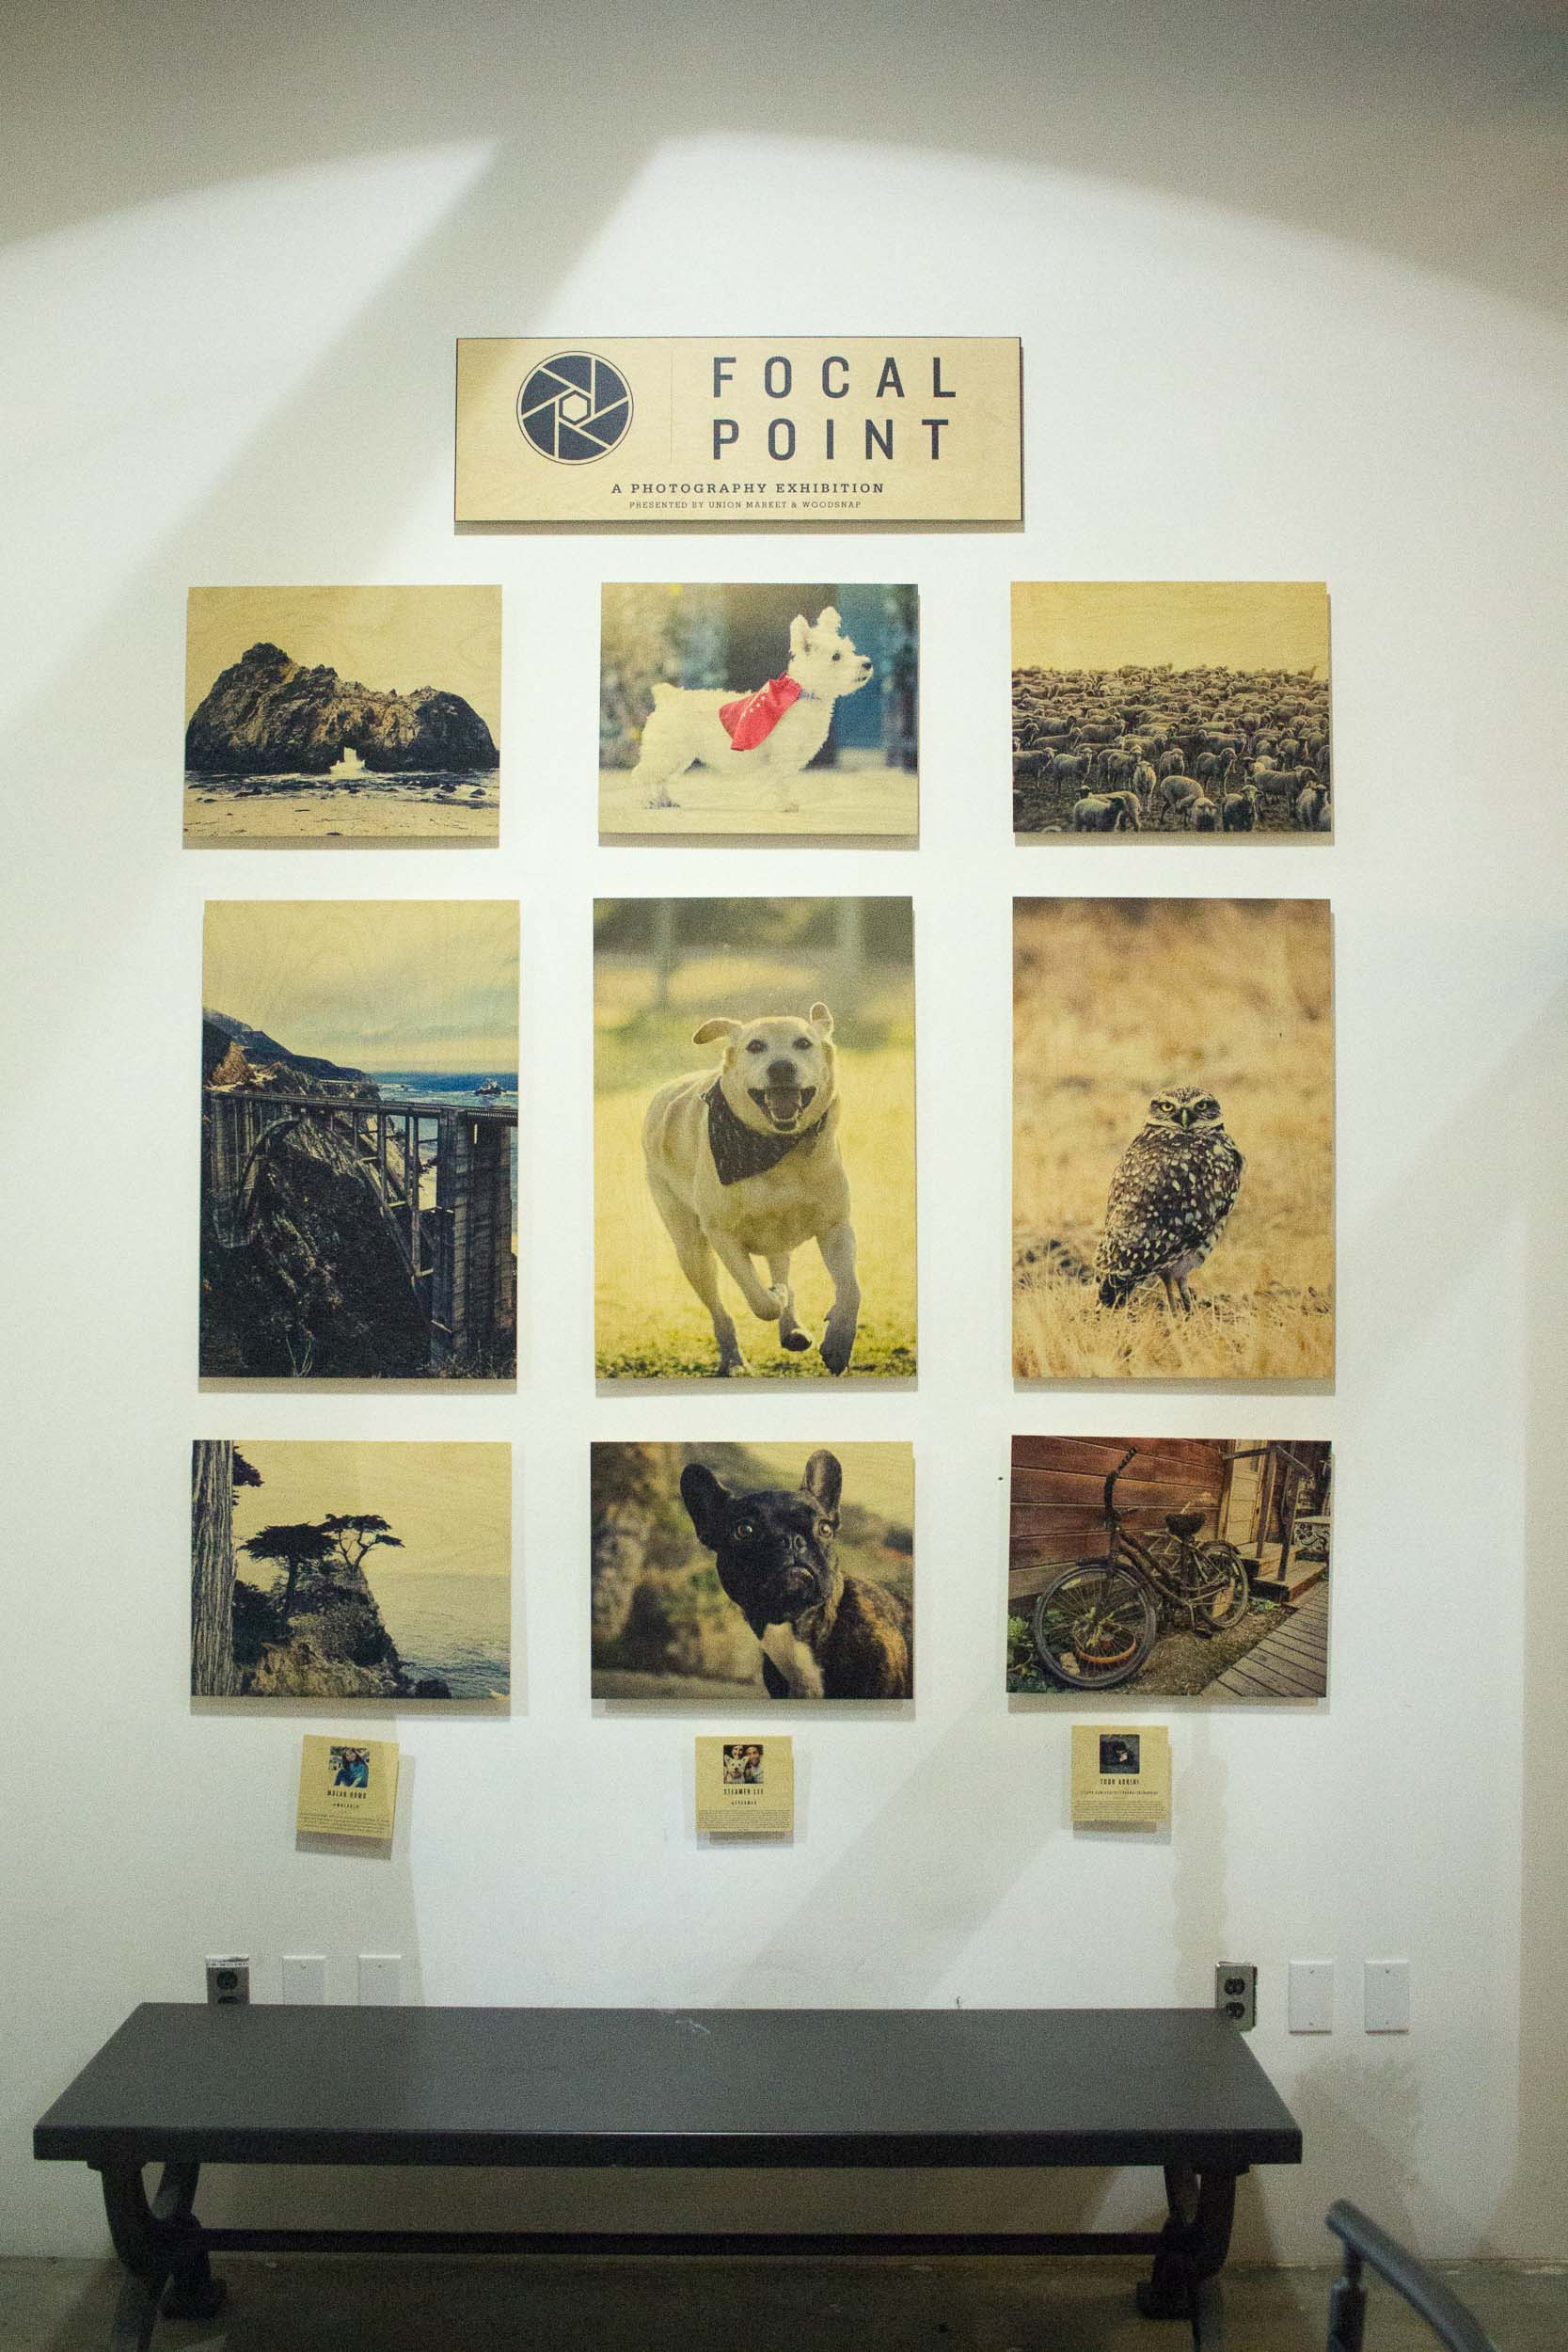 Steamer Lee Dog Photography - Focal Point Mission Viejo WoodSnap Exhibit - 1.jpg